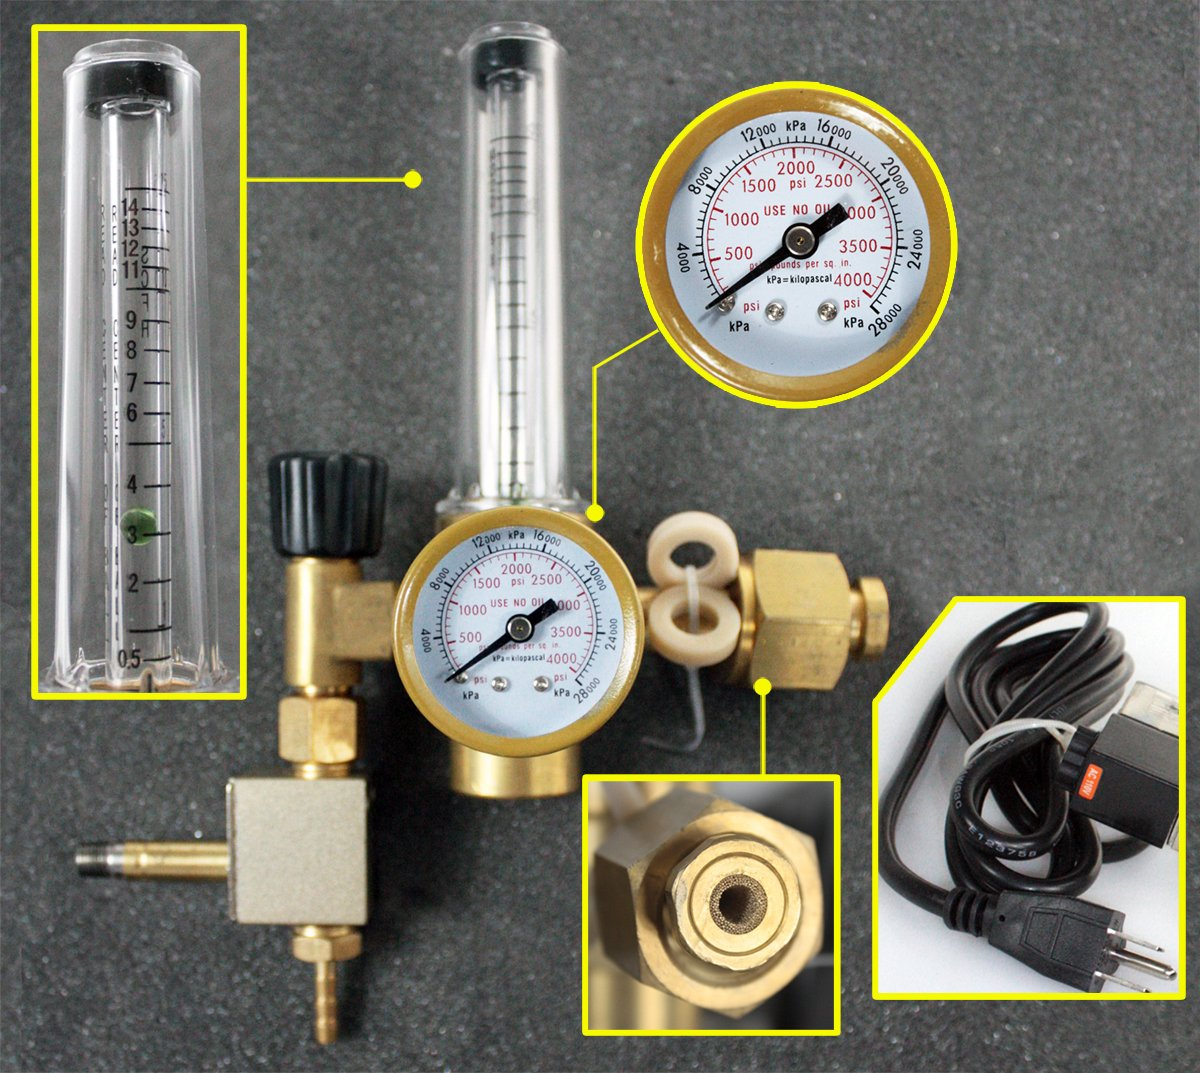 QuestCraft Extoic CO2 Injection System Regulator Grow Room Hydroponics Flow Meter Control